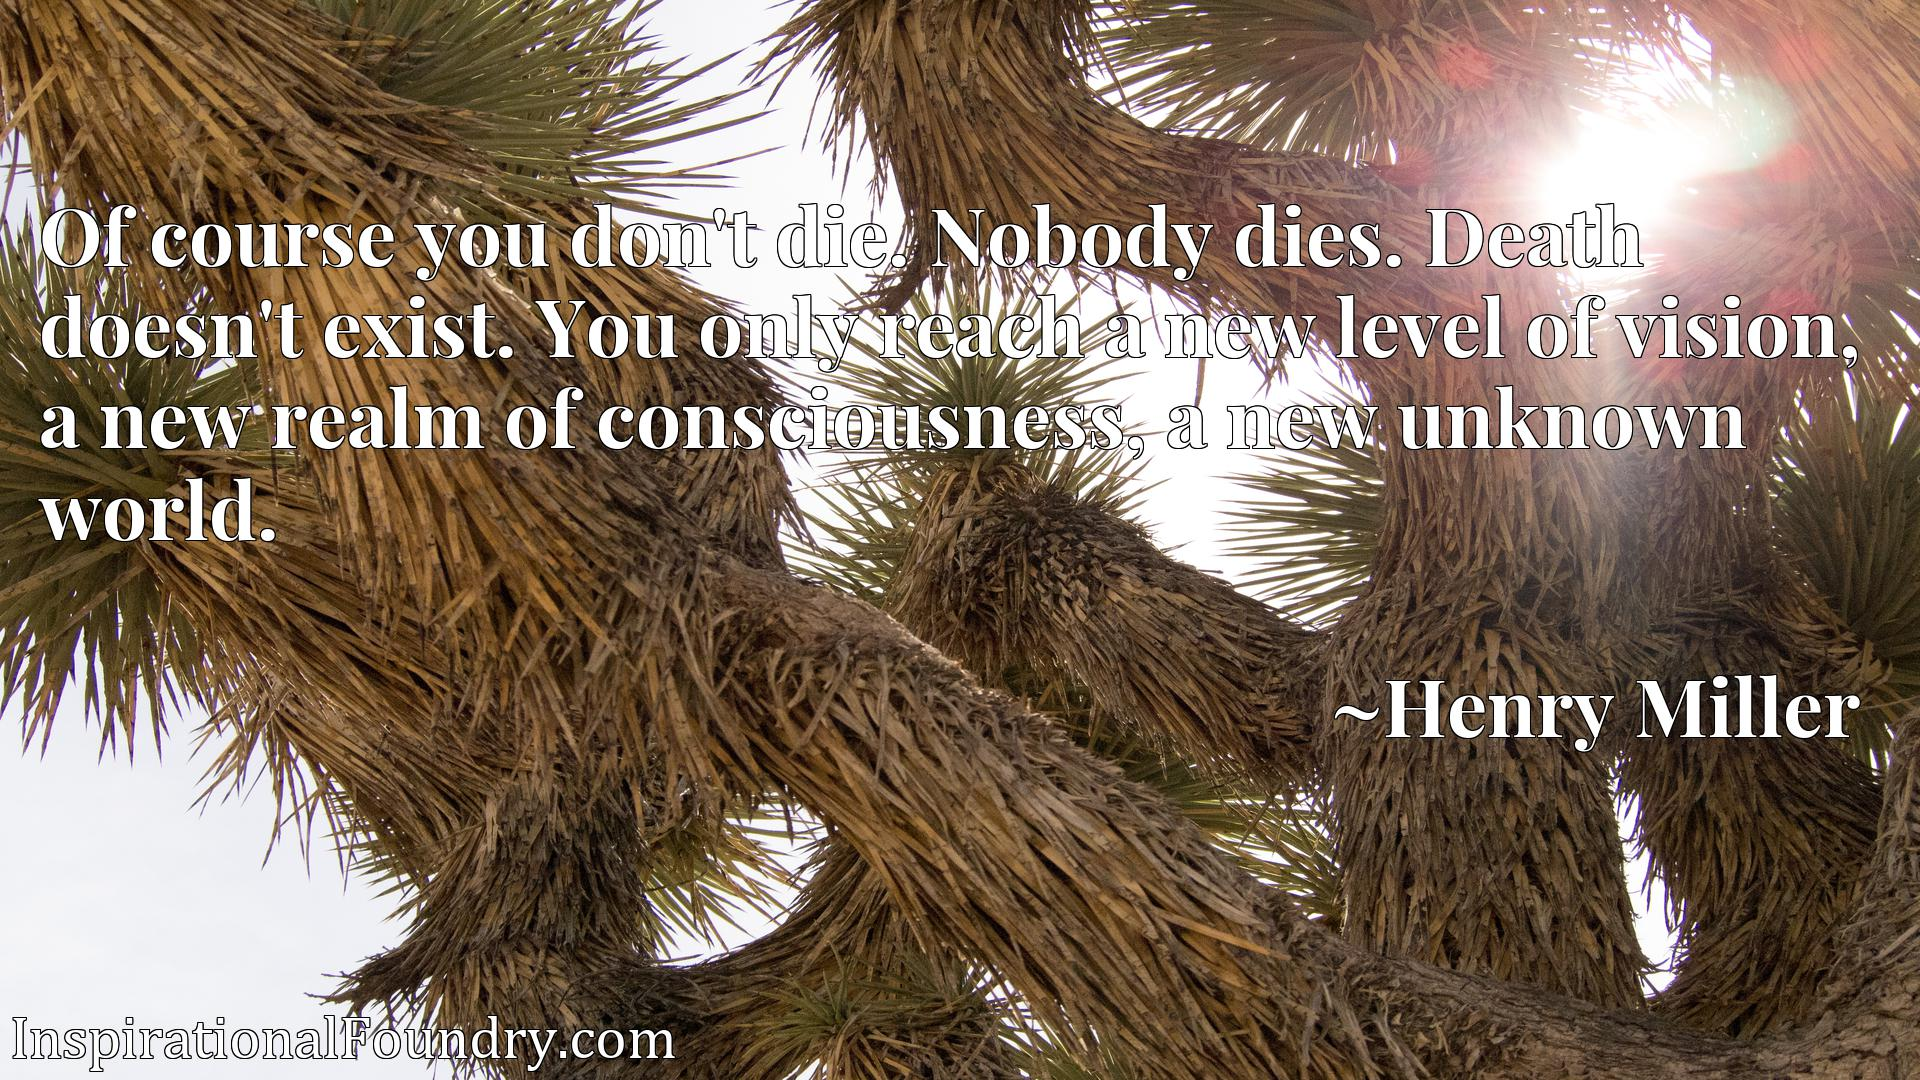 Of course you don't die. Nobody dies. Death doesn't exist. You only reach a new level of vision, a new realm of consciousness, a new unknown world.